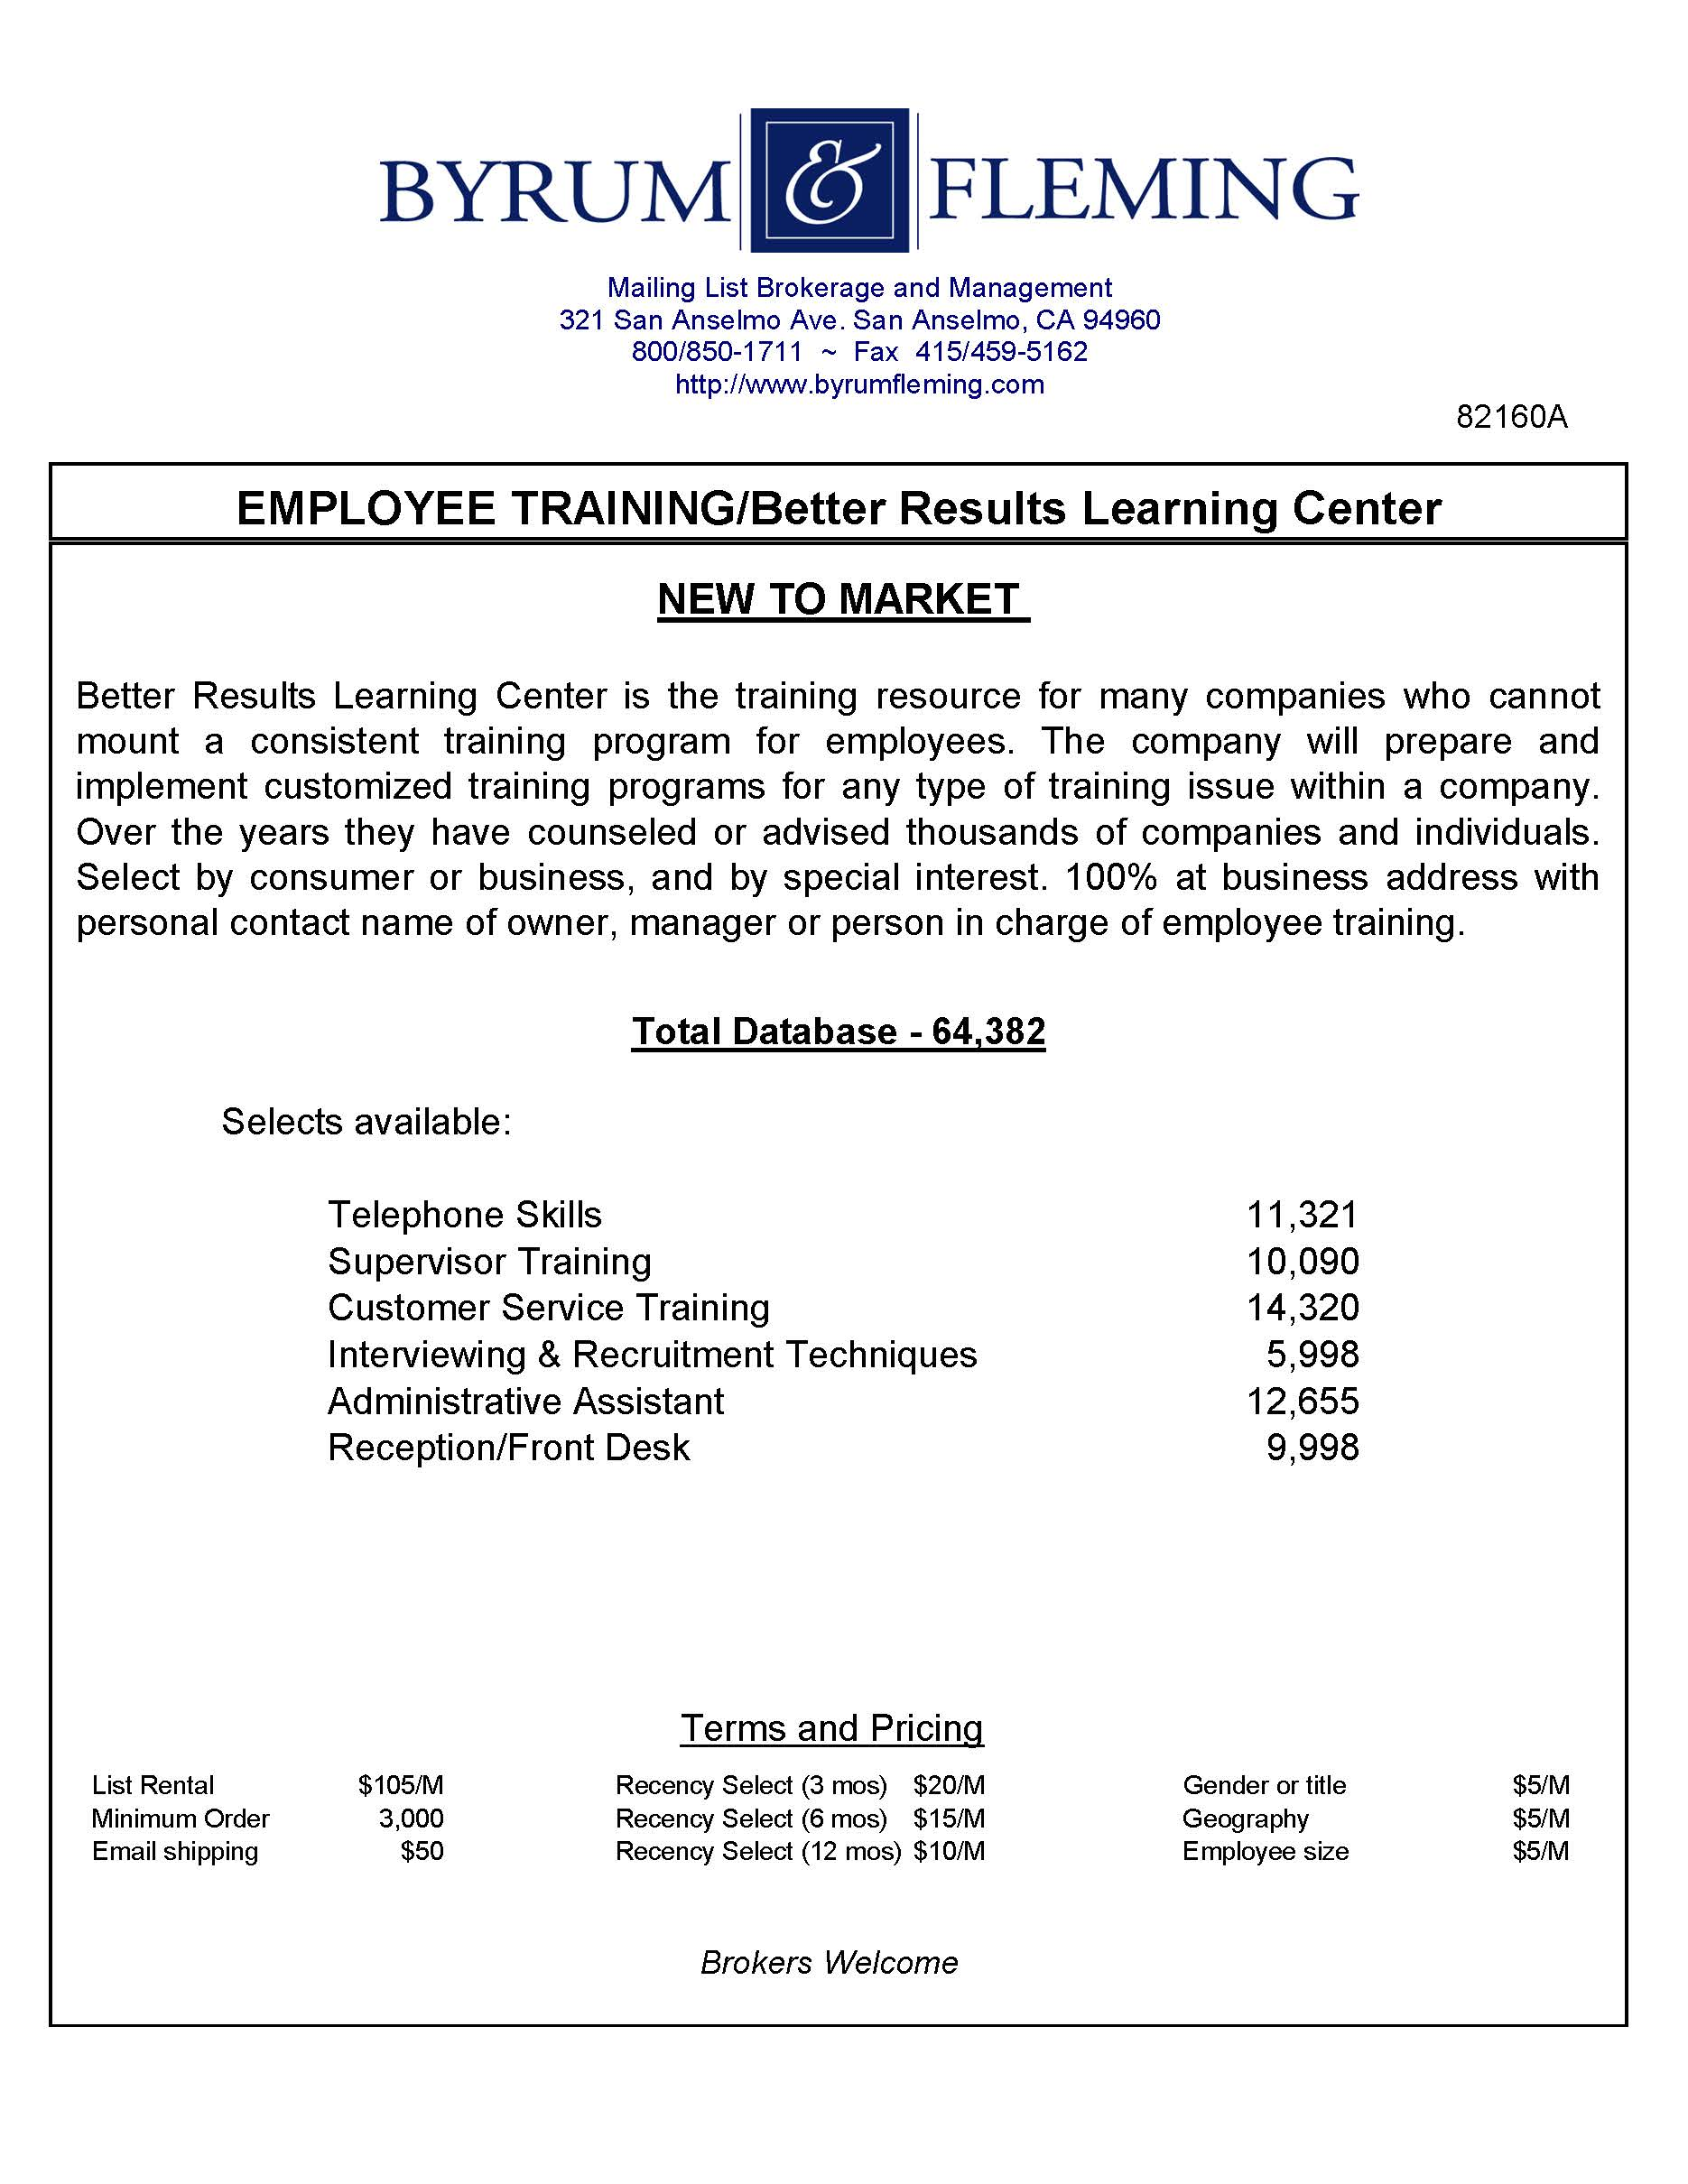 EMPLOYEE TRAINING/BETTER RESULTS LEARNING CENTER — Byrum